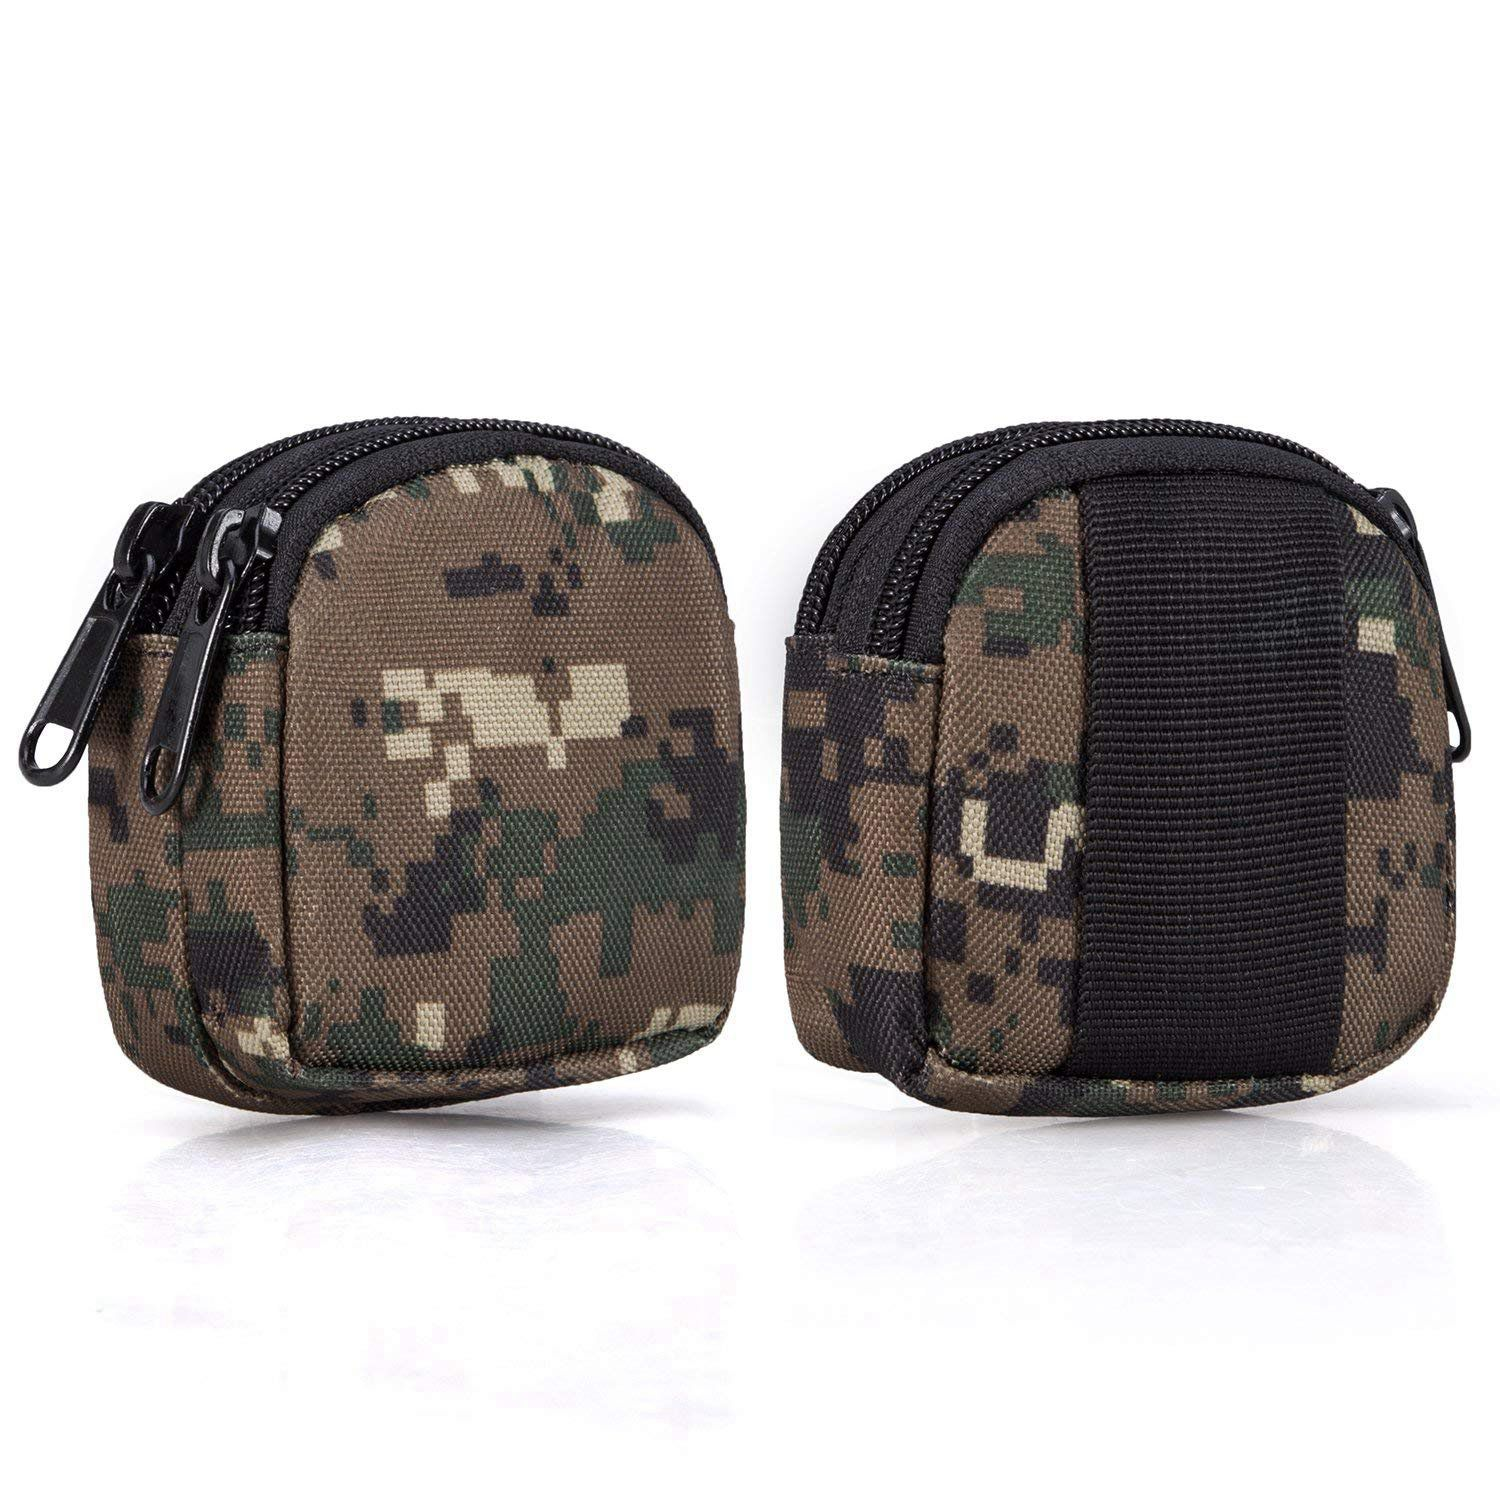 Small Outdoor Pouch,Military Purse Organizer Army Molle Gear(Waterproof)(Dual Layer Pockets) Nylon EDC Utility Gadget Outdoor Wa